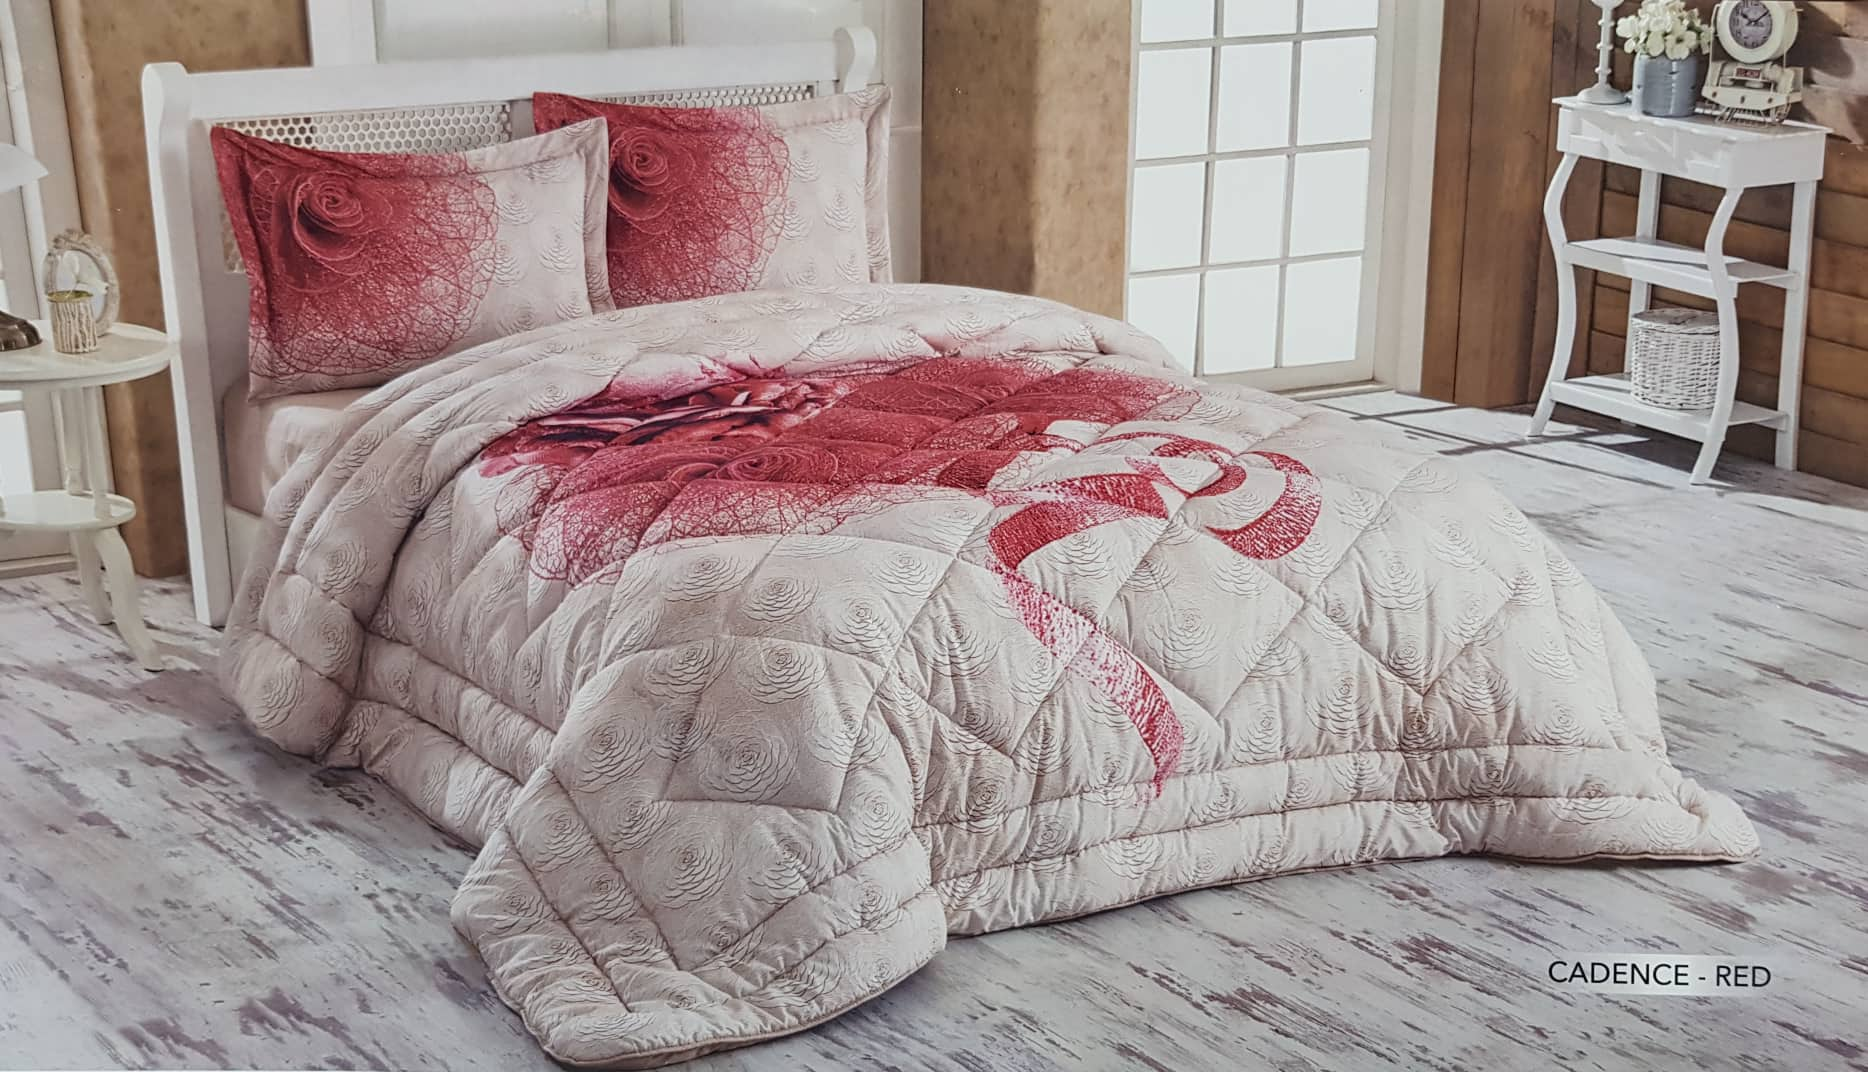 couette cadence red